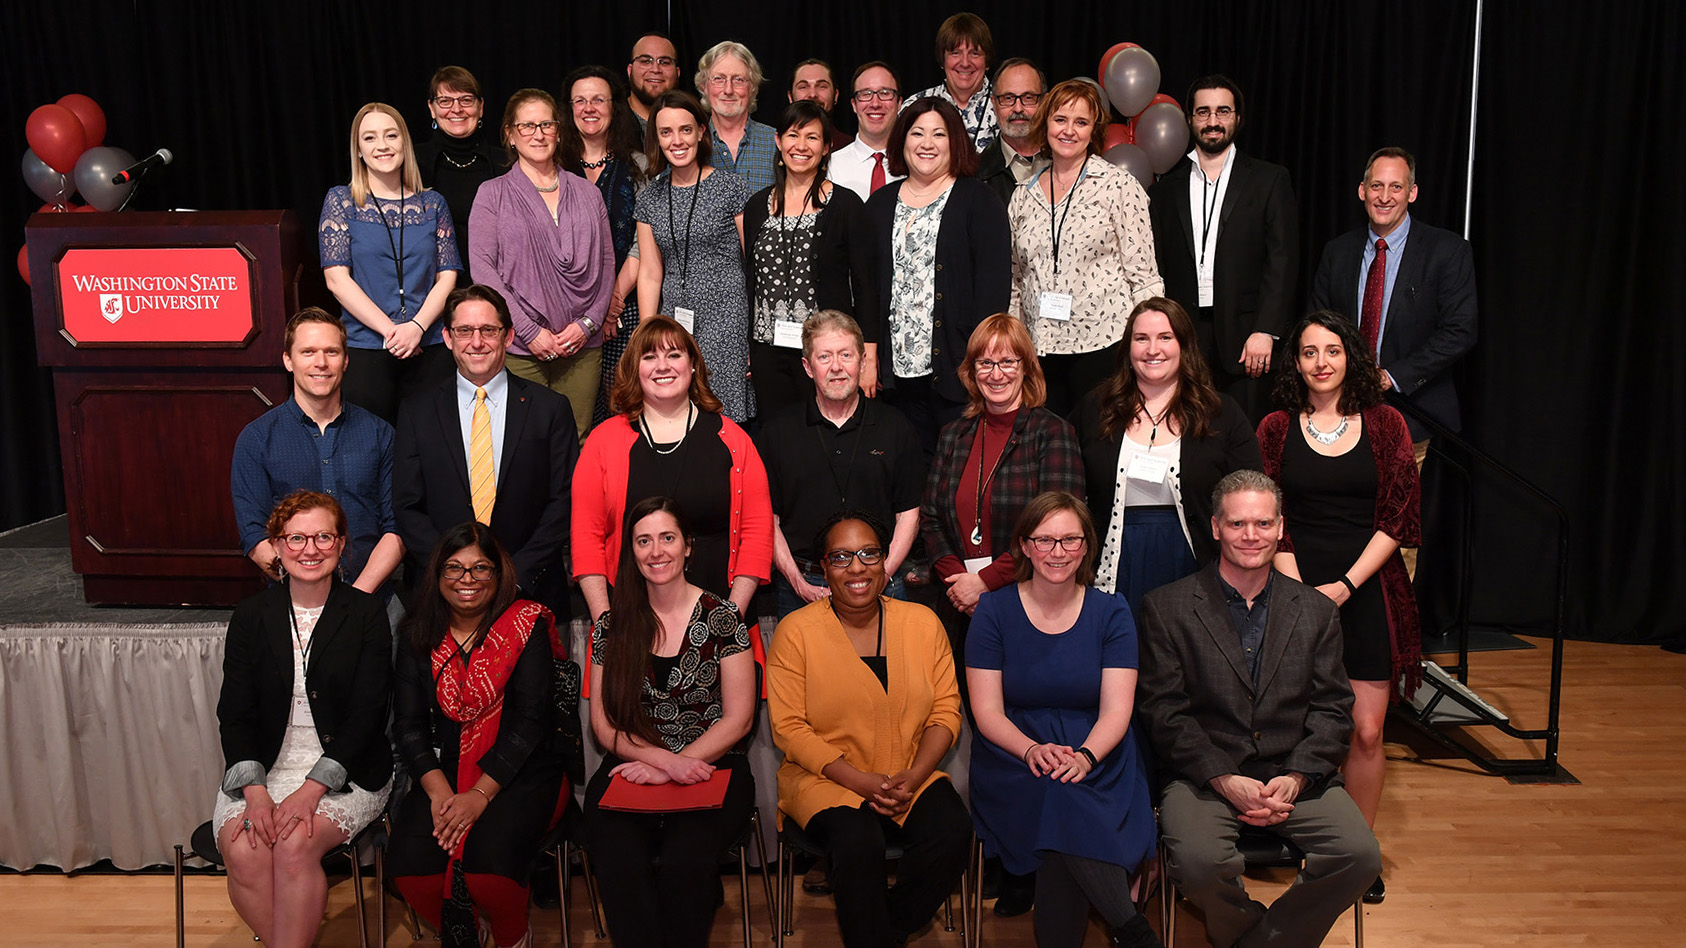 2019 CAS Awardees group photo